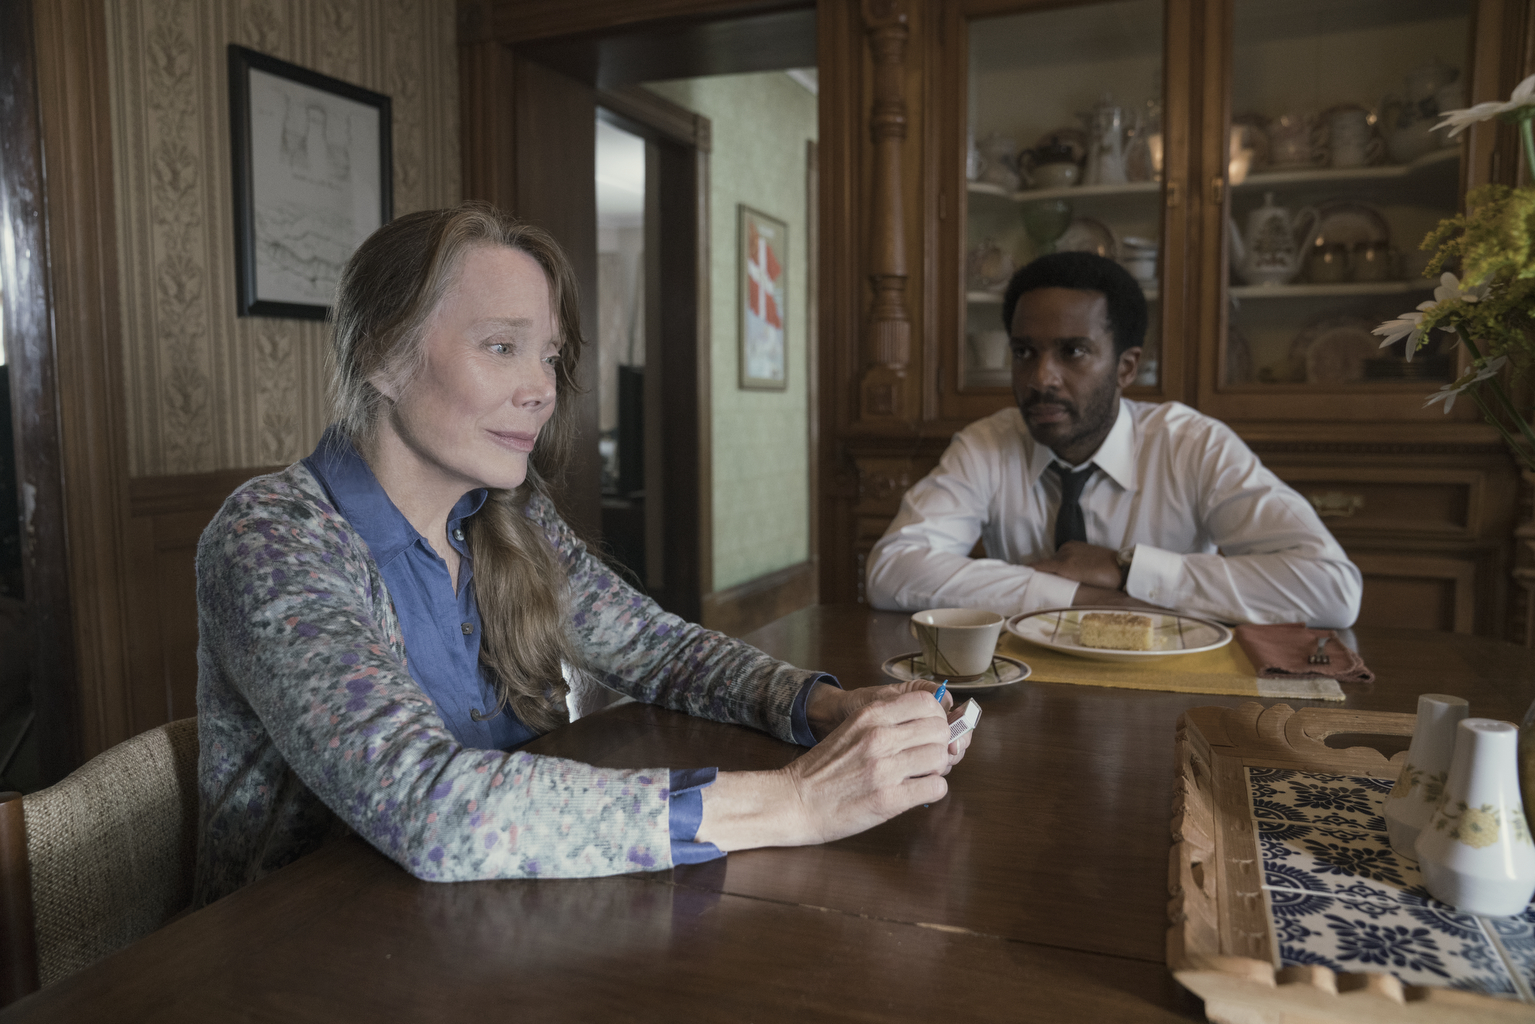 "Castle Rock --""Severance"" - Episode 101 -- Henry Deaver, a death-row attorney, confronts his dark past when an anonymous call lures him back to his hometown of Castle Rock, Maine. Ruth Deaver (Sissy Spacek) and Henry Deaver (Andre Holland), shown. (Photo by: Patrick Harbron/Hulu)"